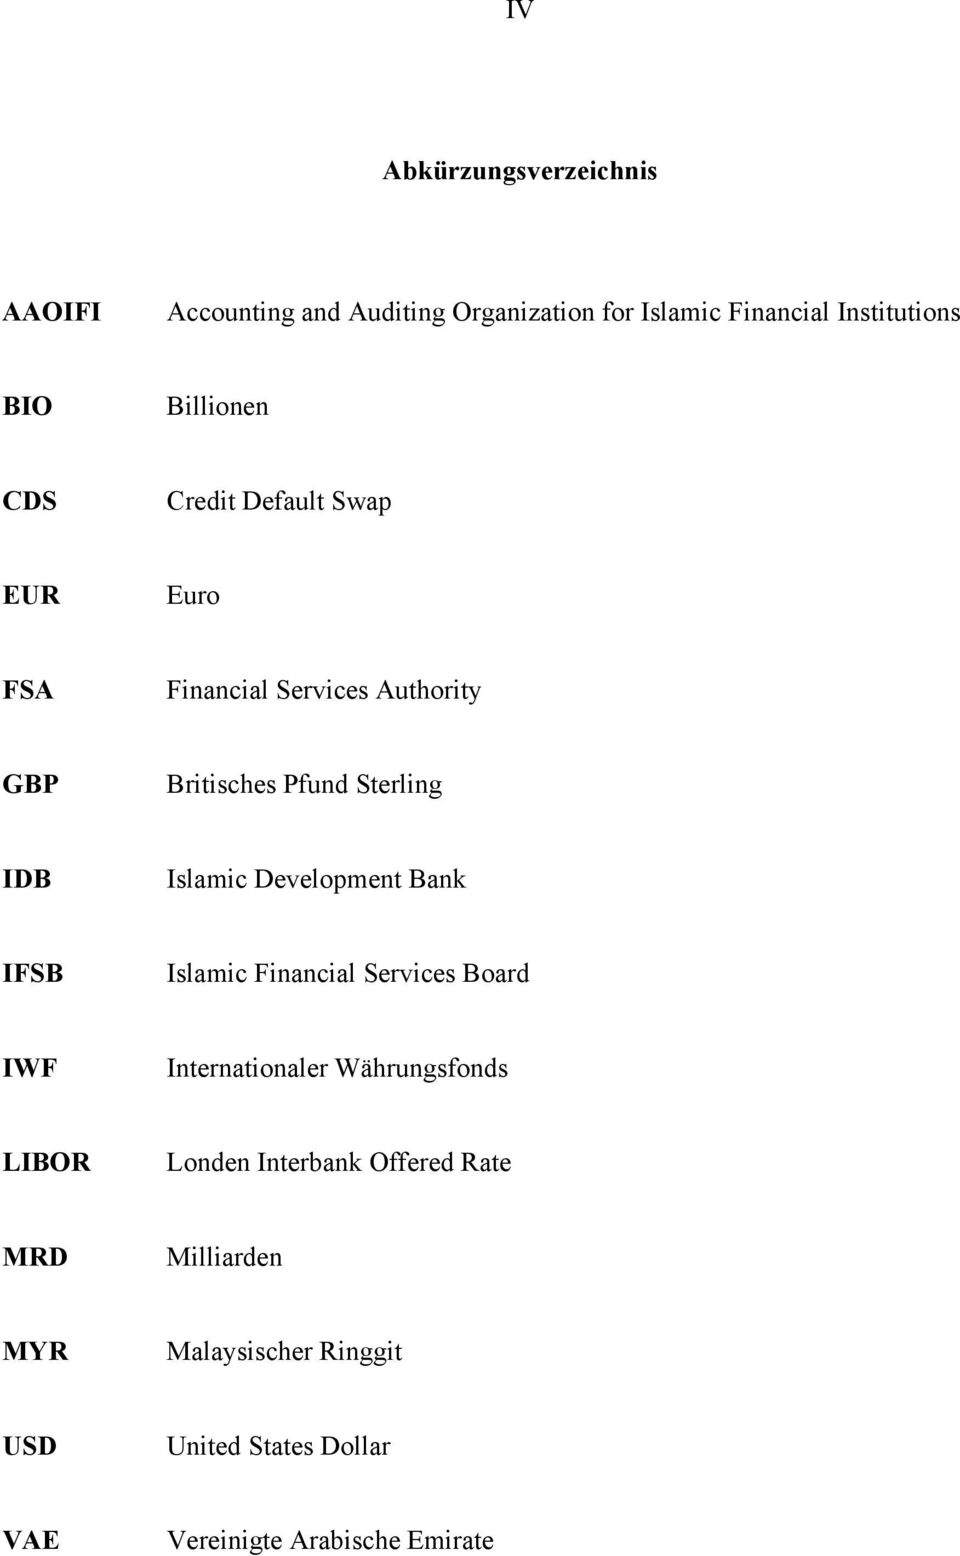 Islamic Development Bank IFSB Islamic Financial Services Board IWF Internationaler Währungsfonds LIBOR Londen